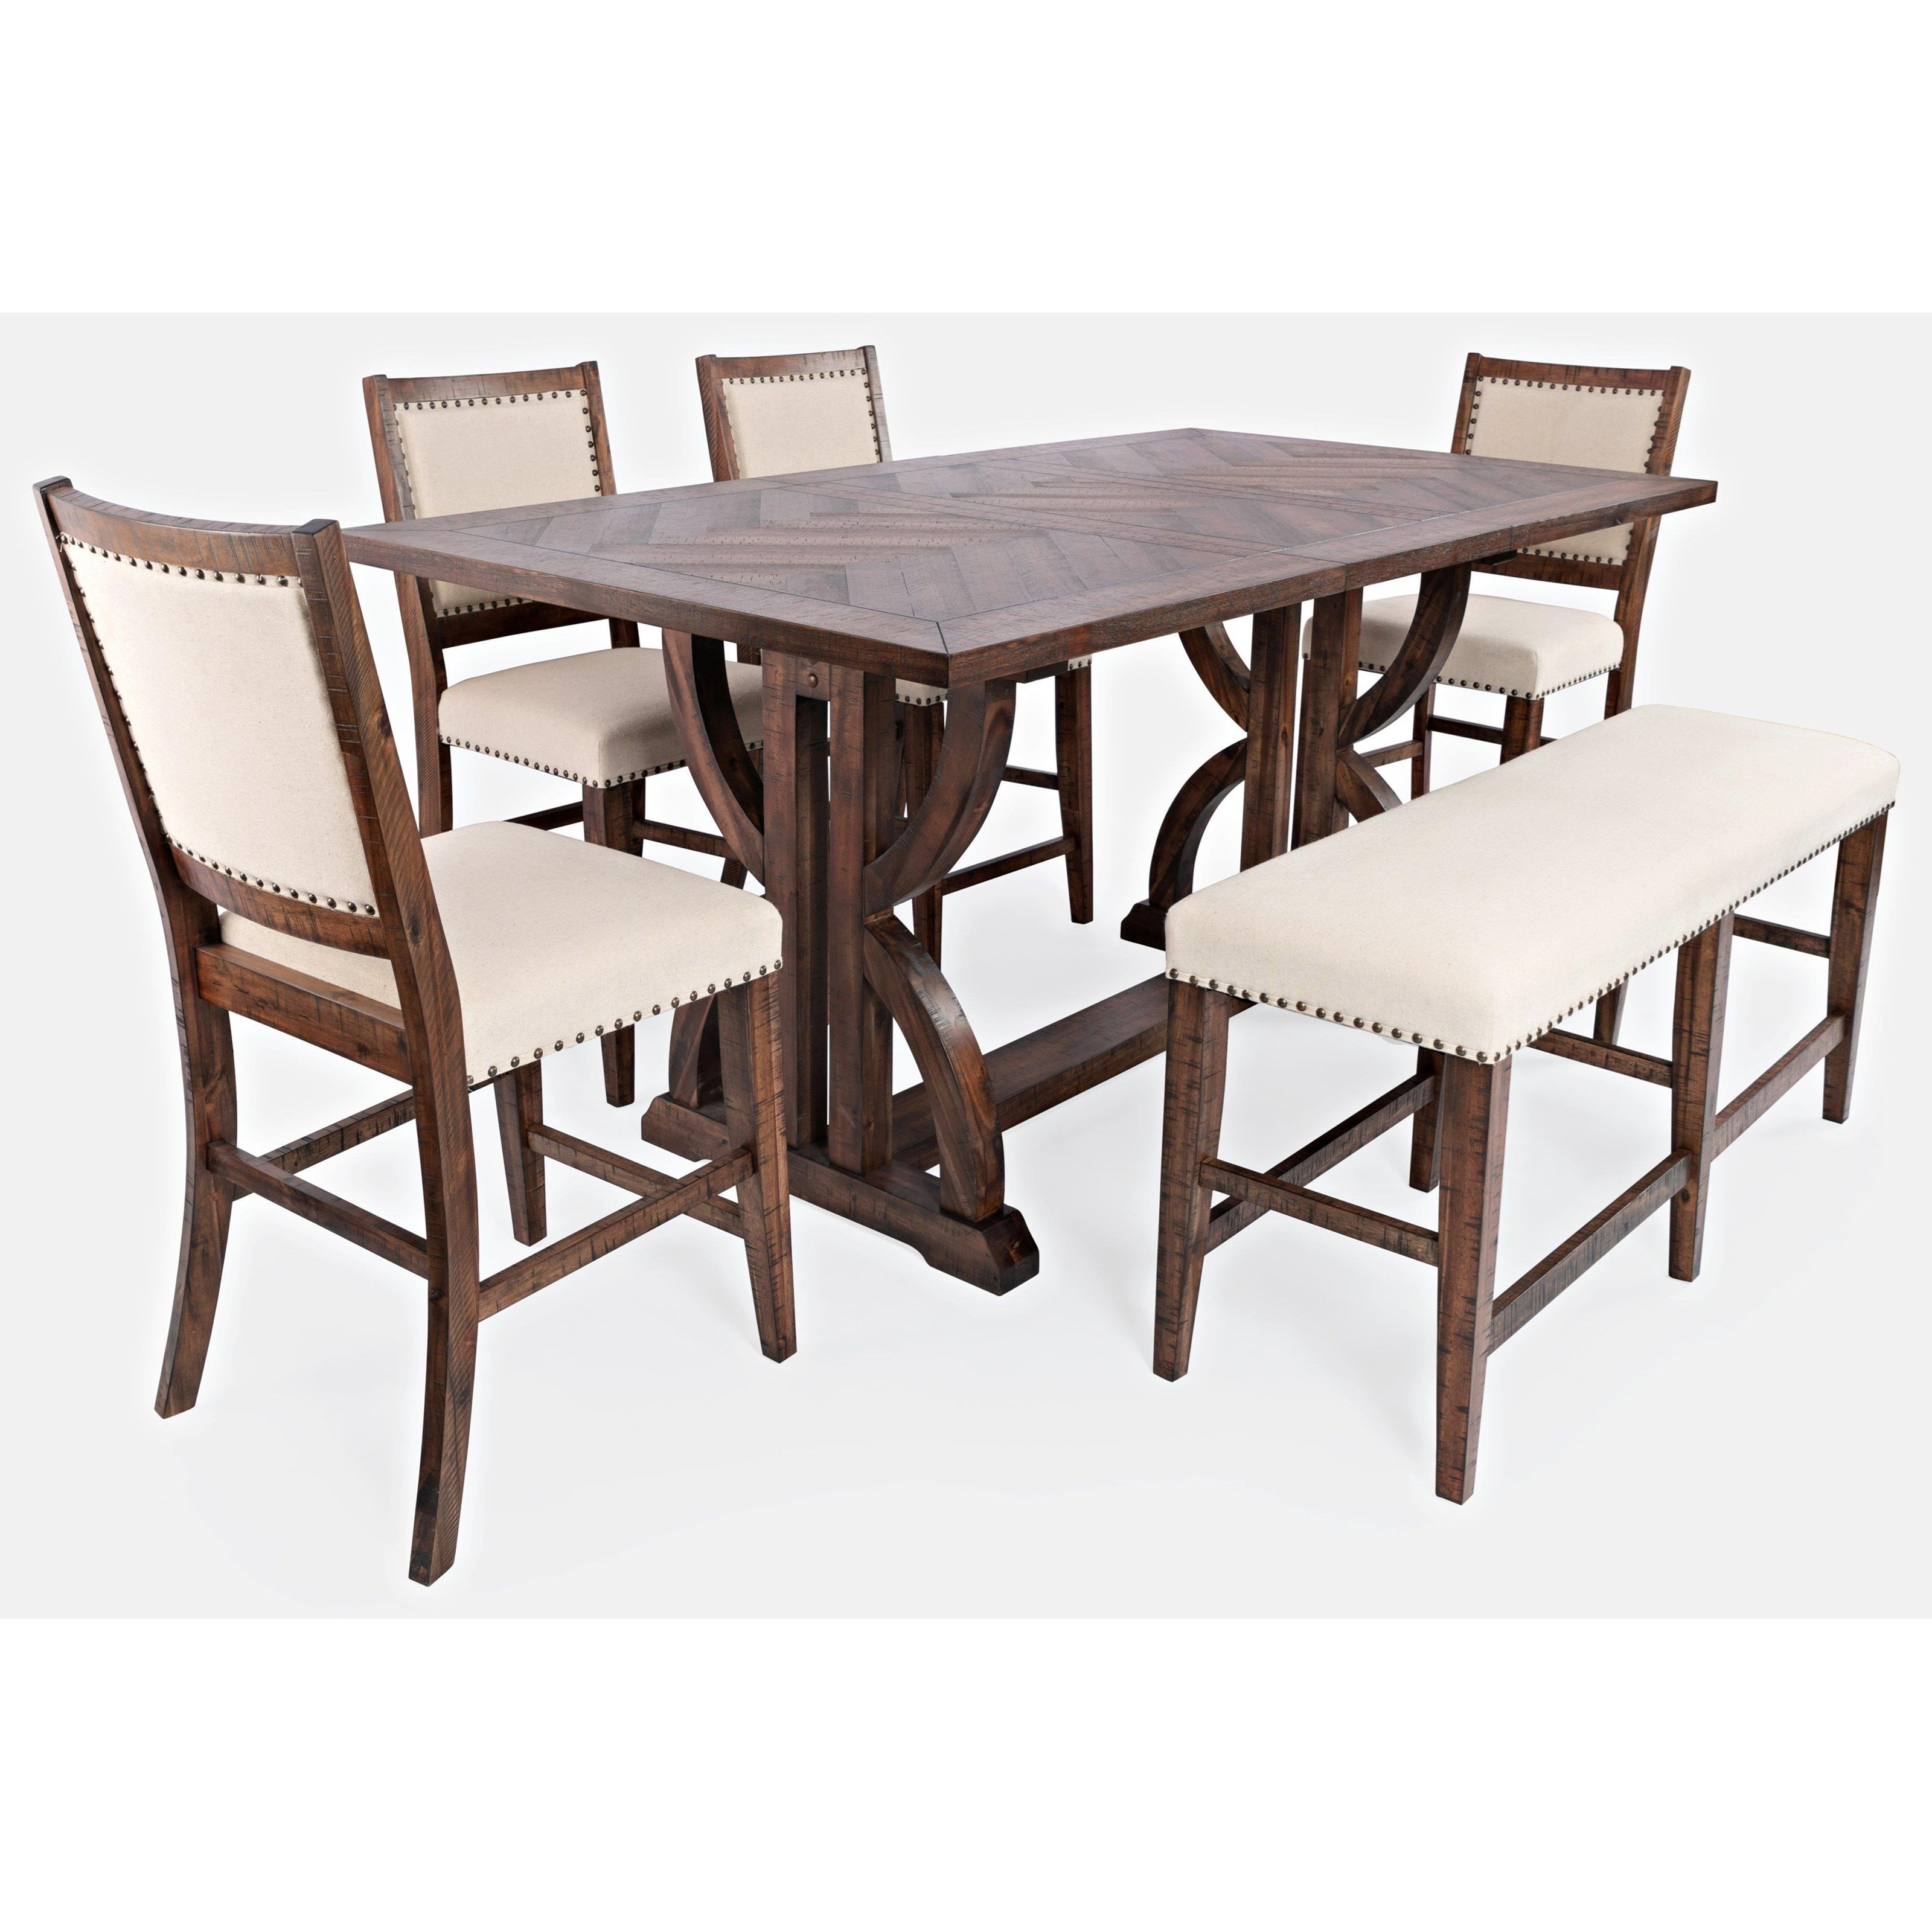 Fairview 6-Piece Counter Table and Chair Set by Jofran at Stuckey Furniture